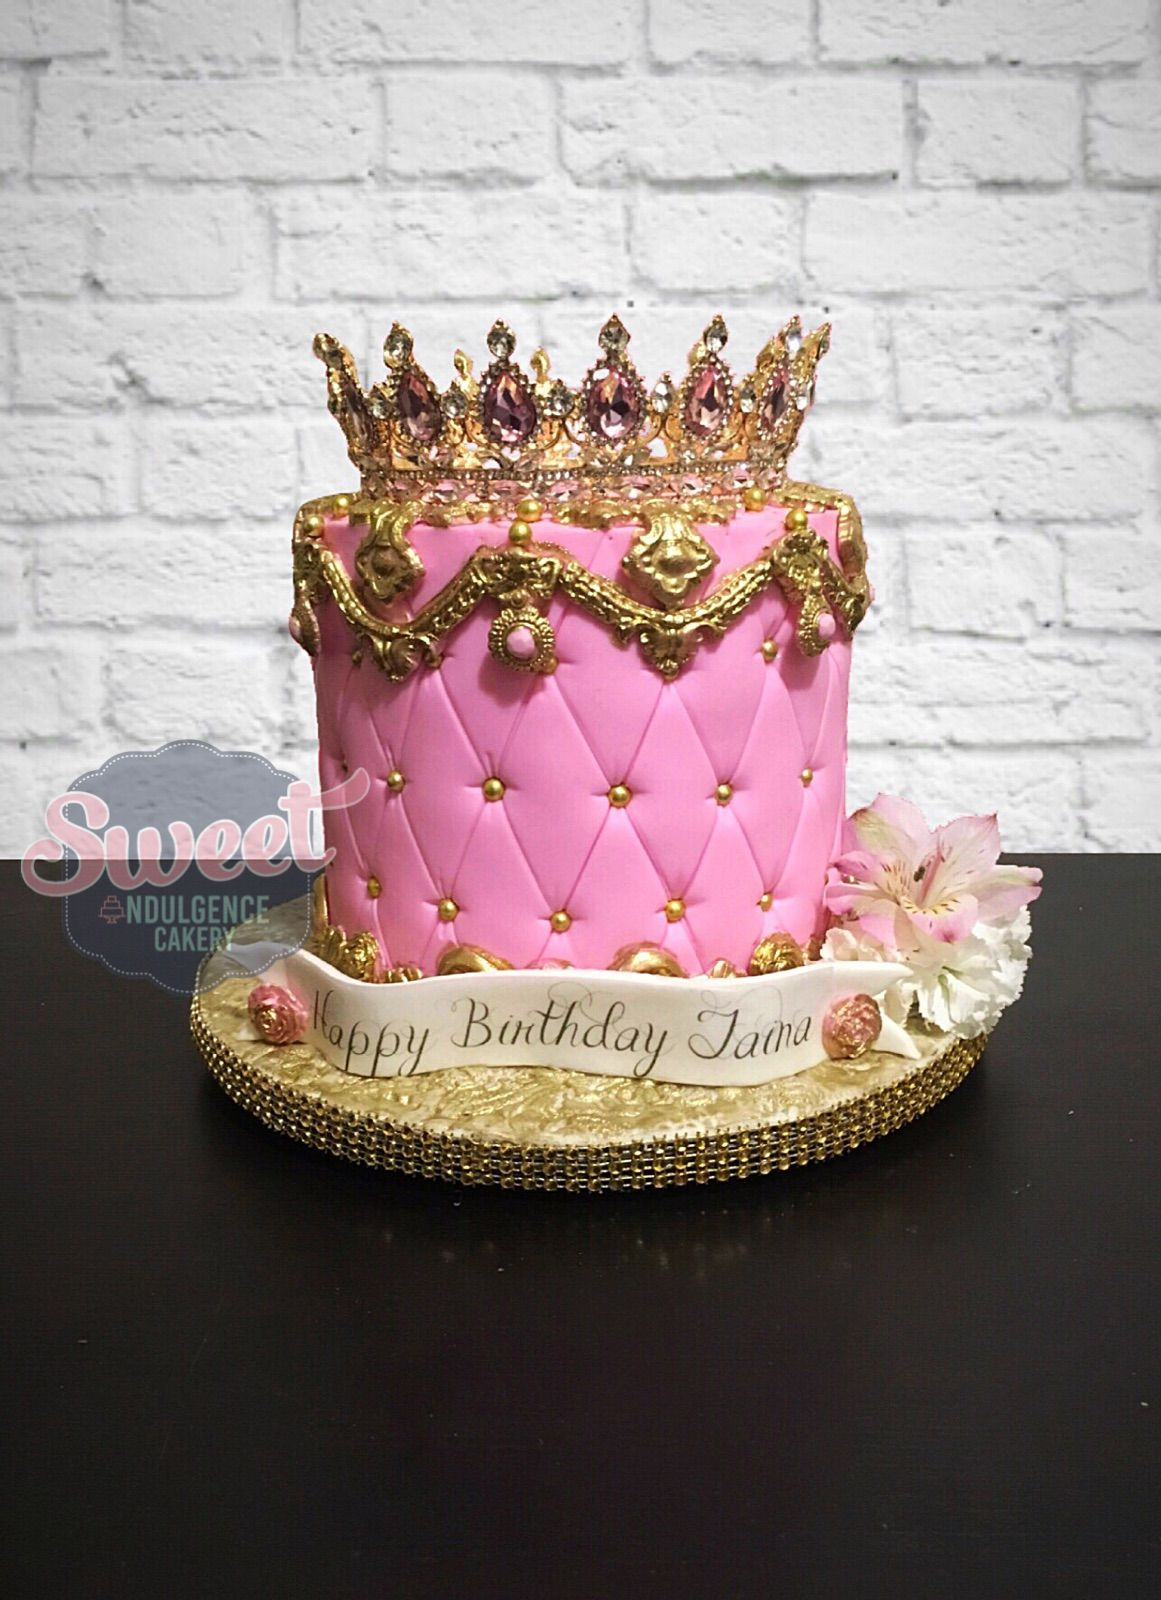 Wondrous Pink Quilted Cake With A Crown On Top 25Th Birthday Cakes Birthday Cards Printable Benkemecafe Filternl